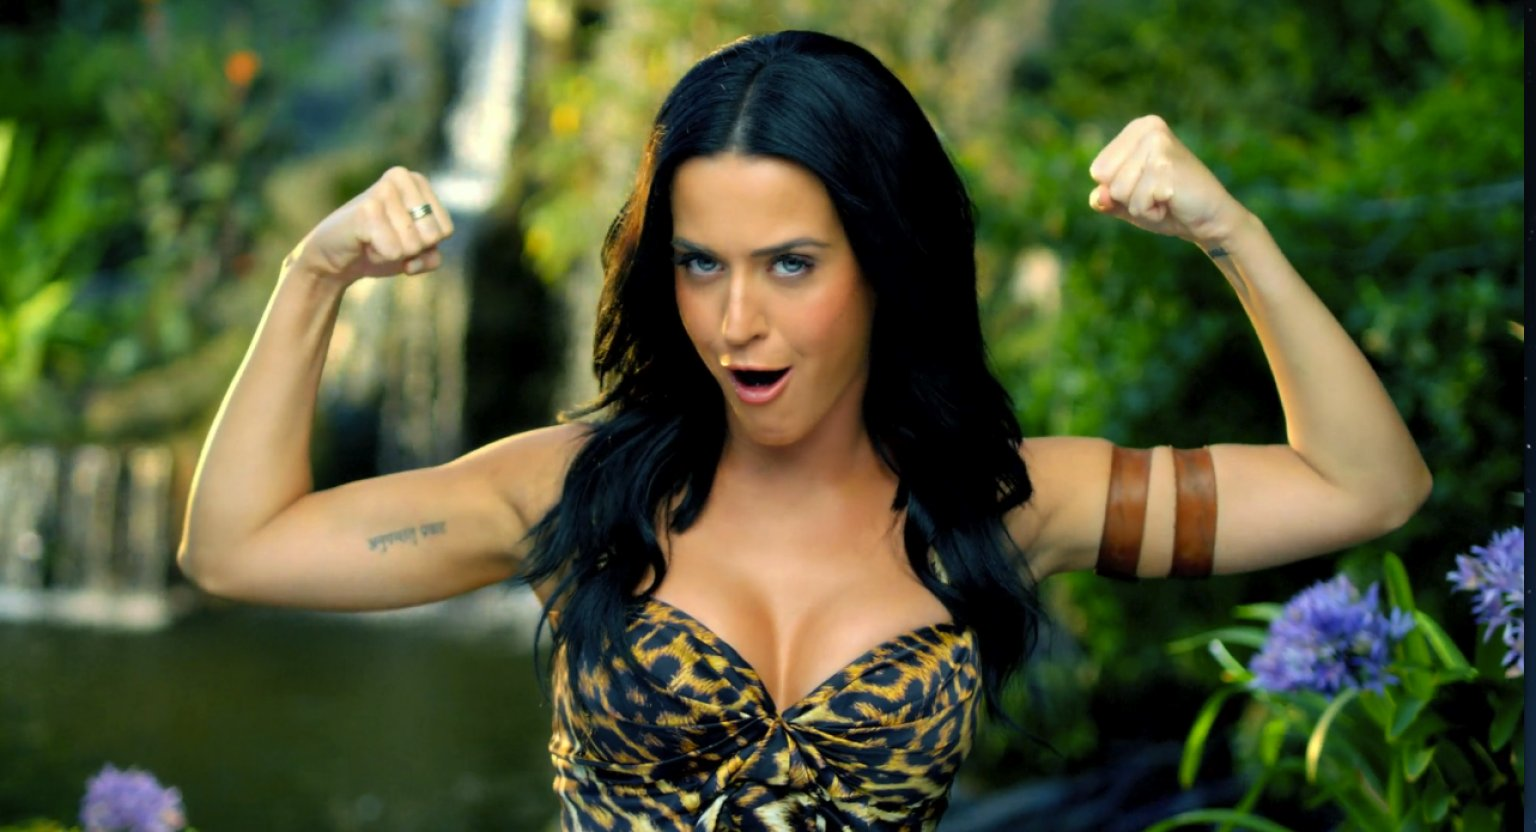 PETA: Katy Perry's 'Roar' Music Video Is Cruel To Animals